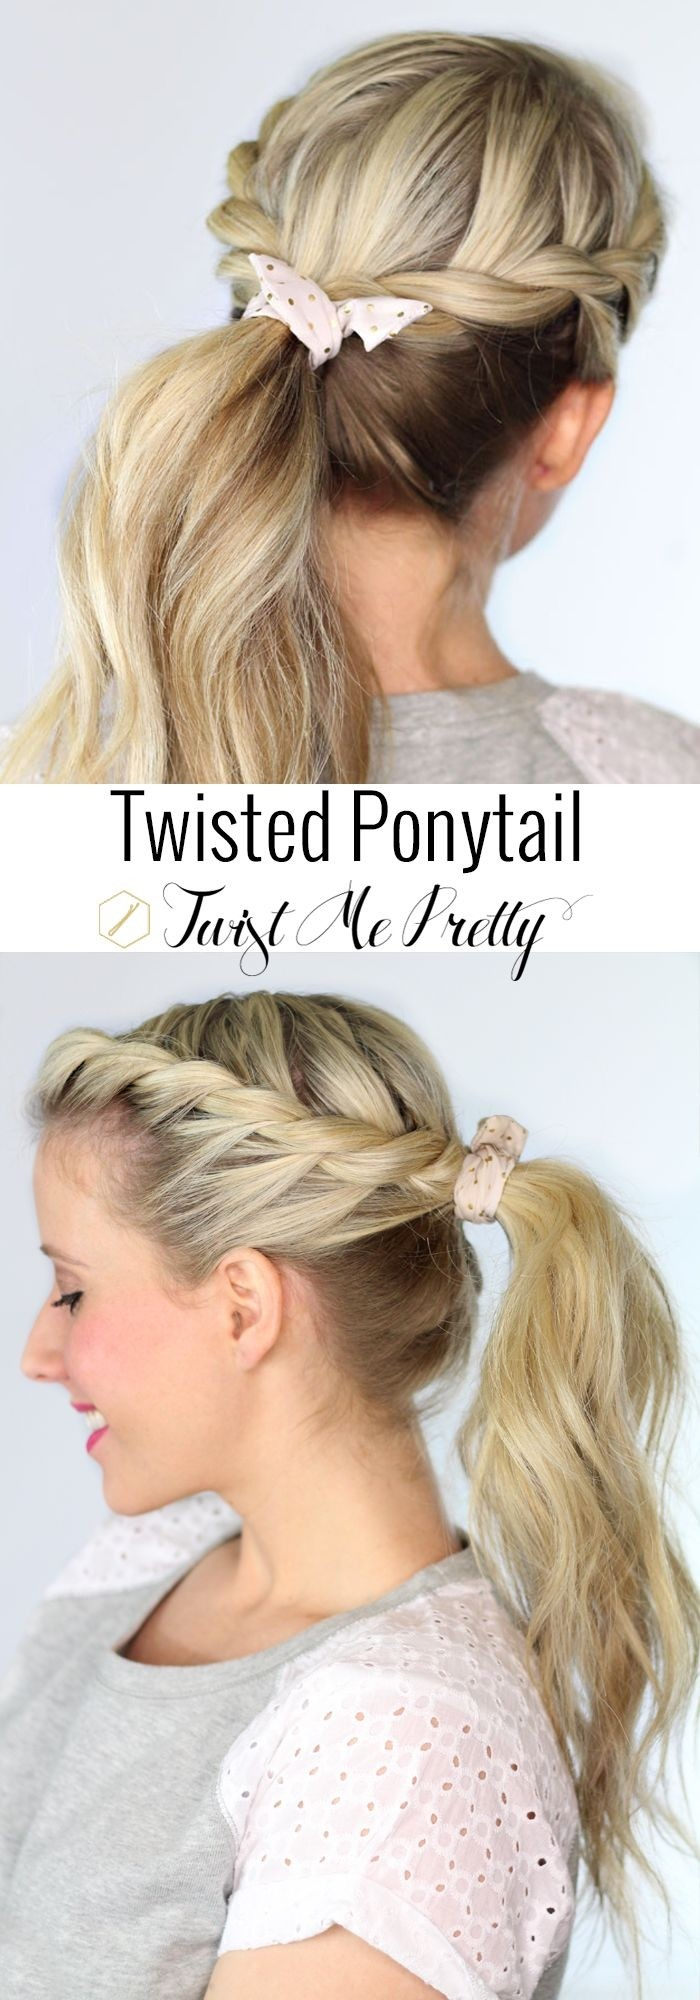 Pretty Twisted Ponytail Hairstyle